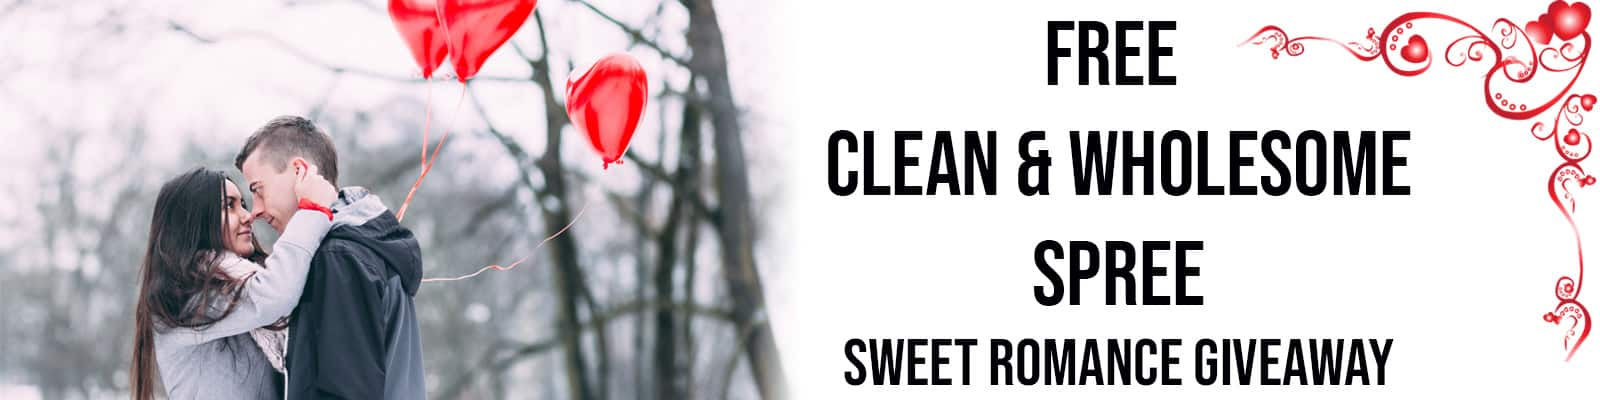 Free Clean & Wholesome Spree: Sweet Romance Books